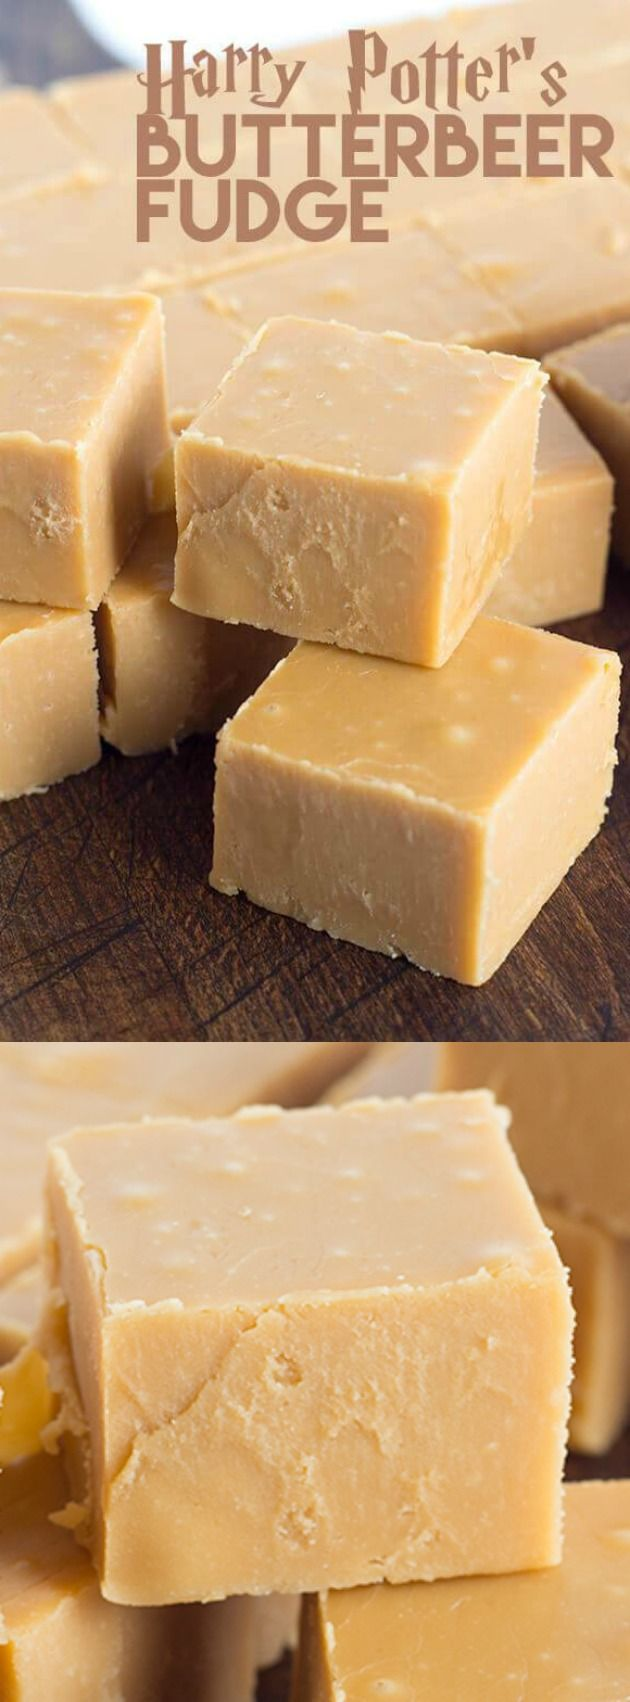 This Harry Potter's Butterbeer Fudge recipe from Cookie Dough and Oven Mitt is unlike any fudge that you've had before. It's smooth, creamy, and has an amazing flavor from the butter rum and butterscotch!